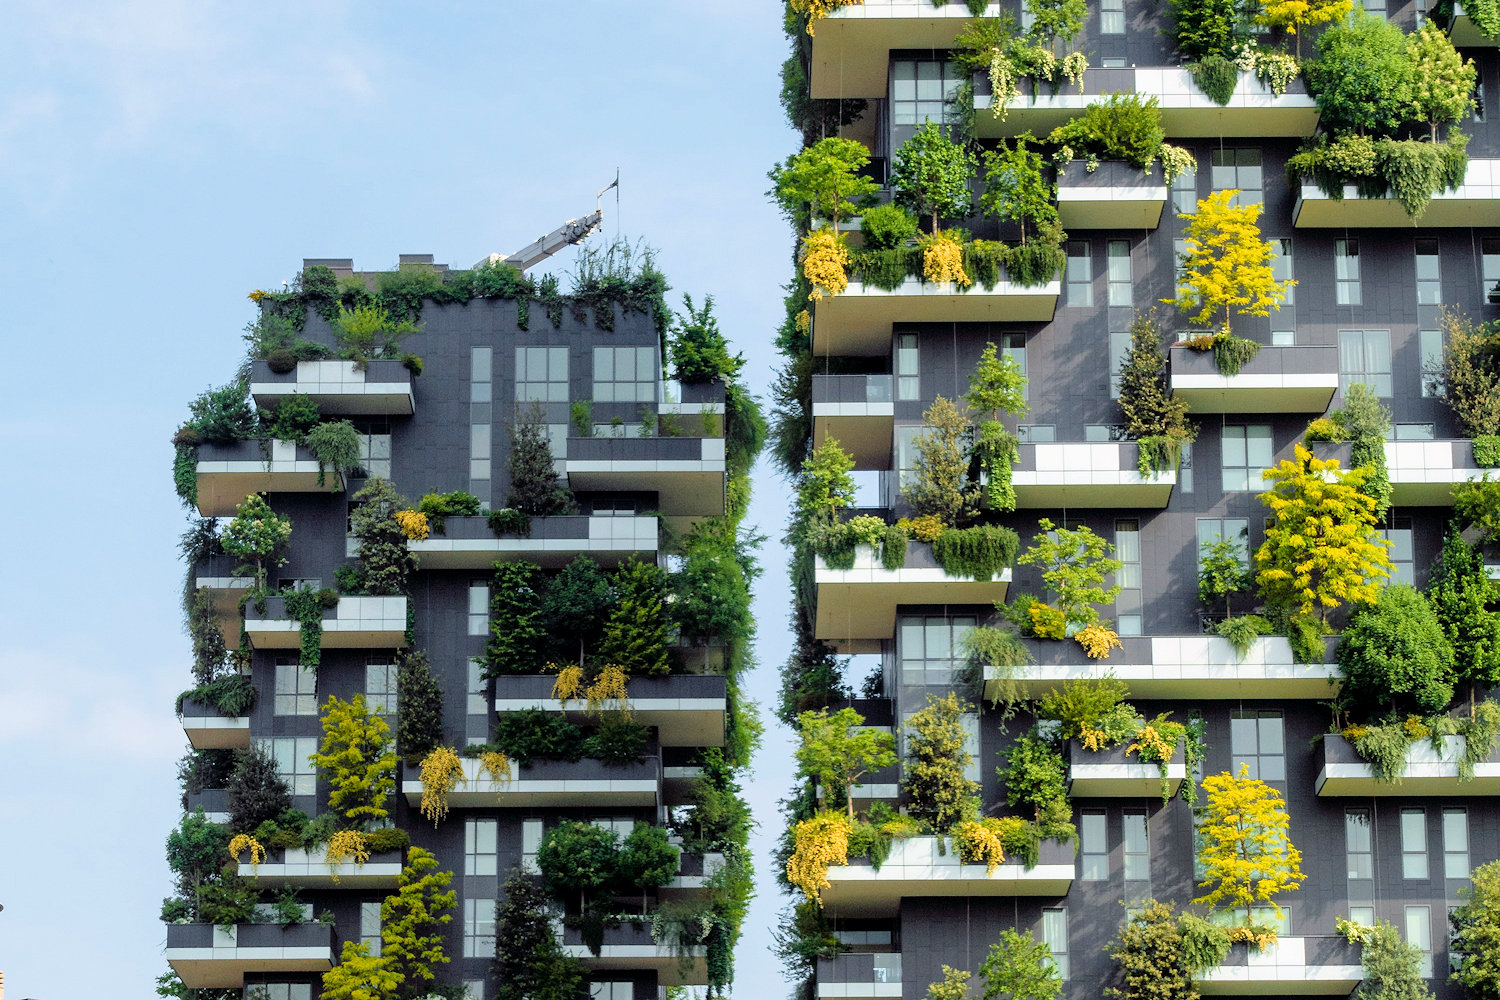 Bosco Verticale, The Vertical Forest, Milan